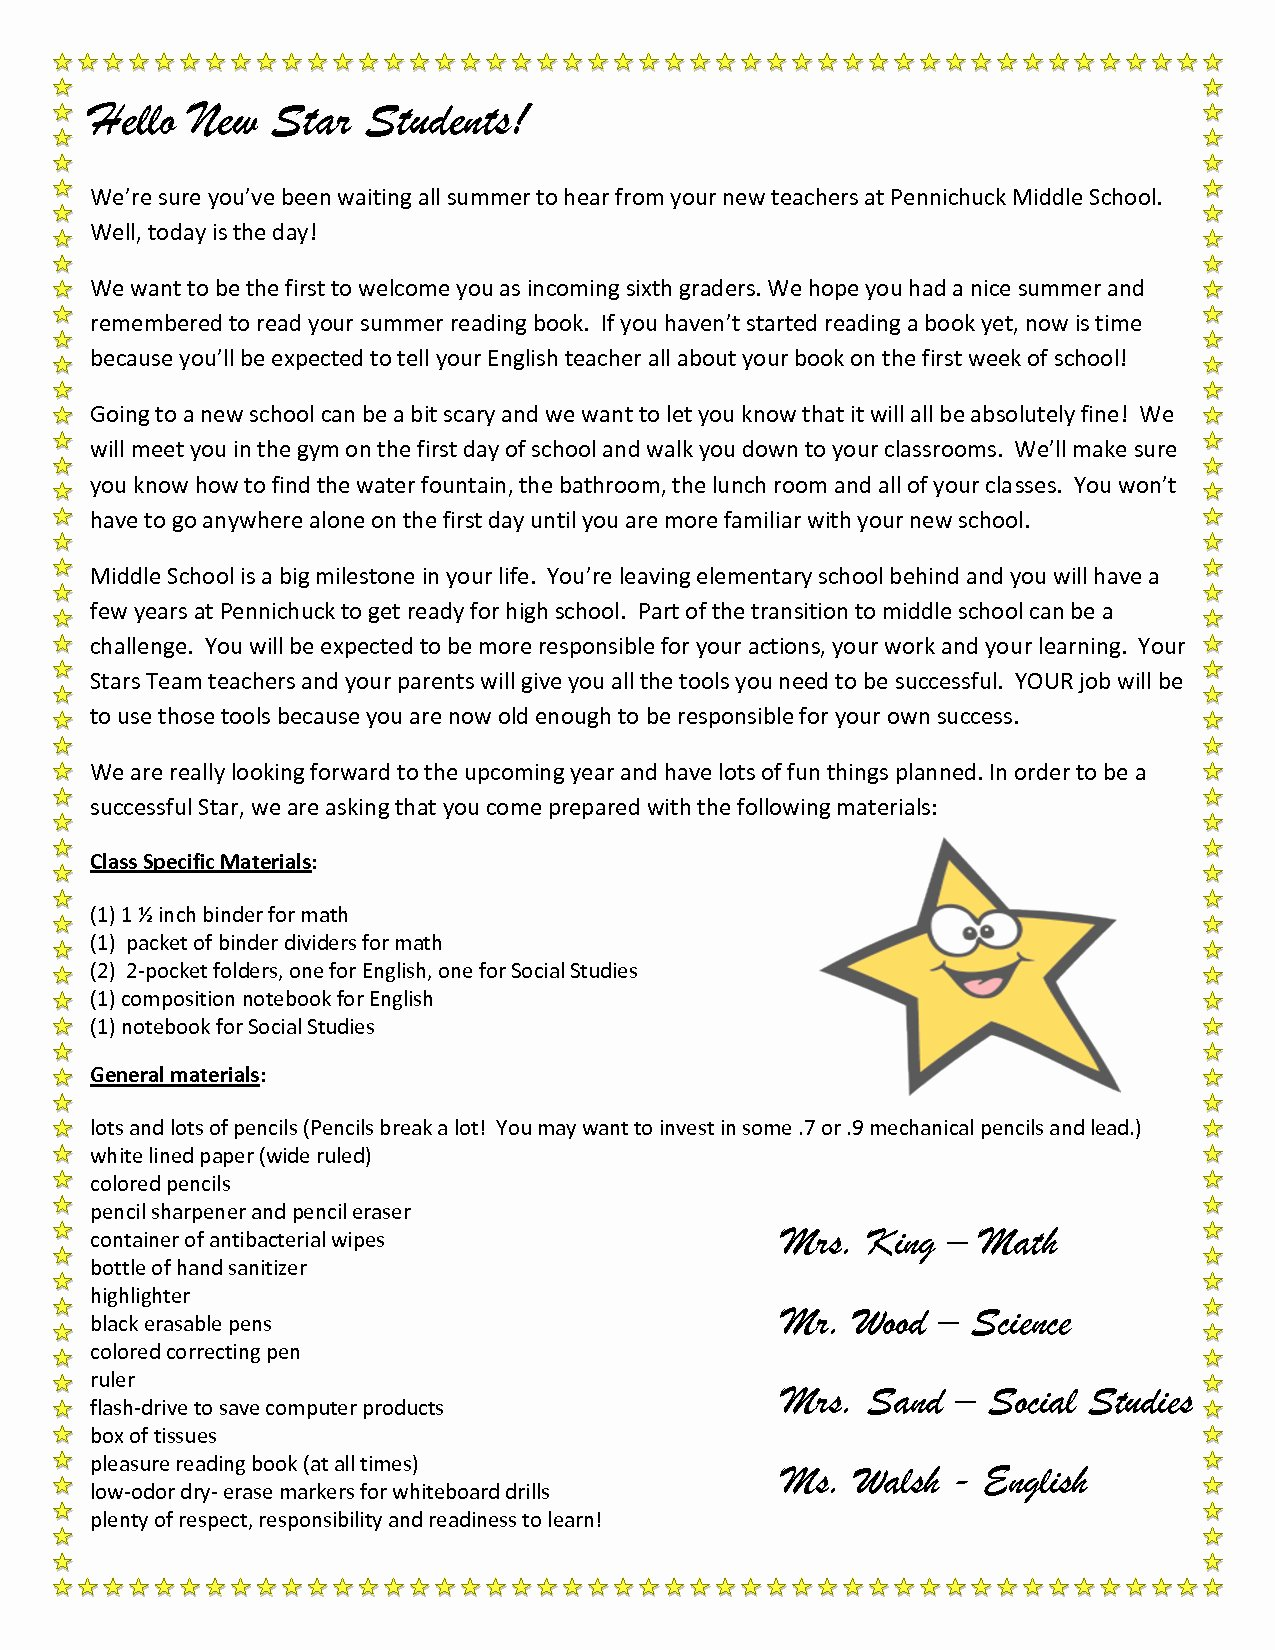 Teacher Welcome Letter Template New Teacher Wel E Letter to Parents Template Download